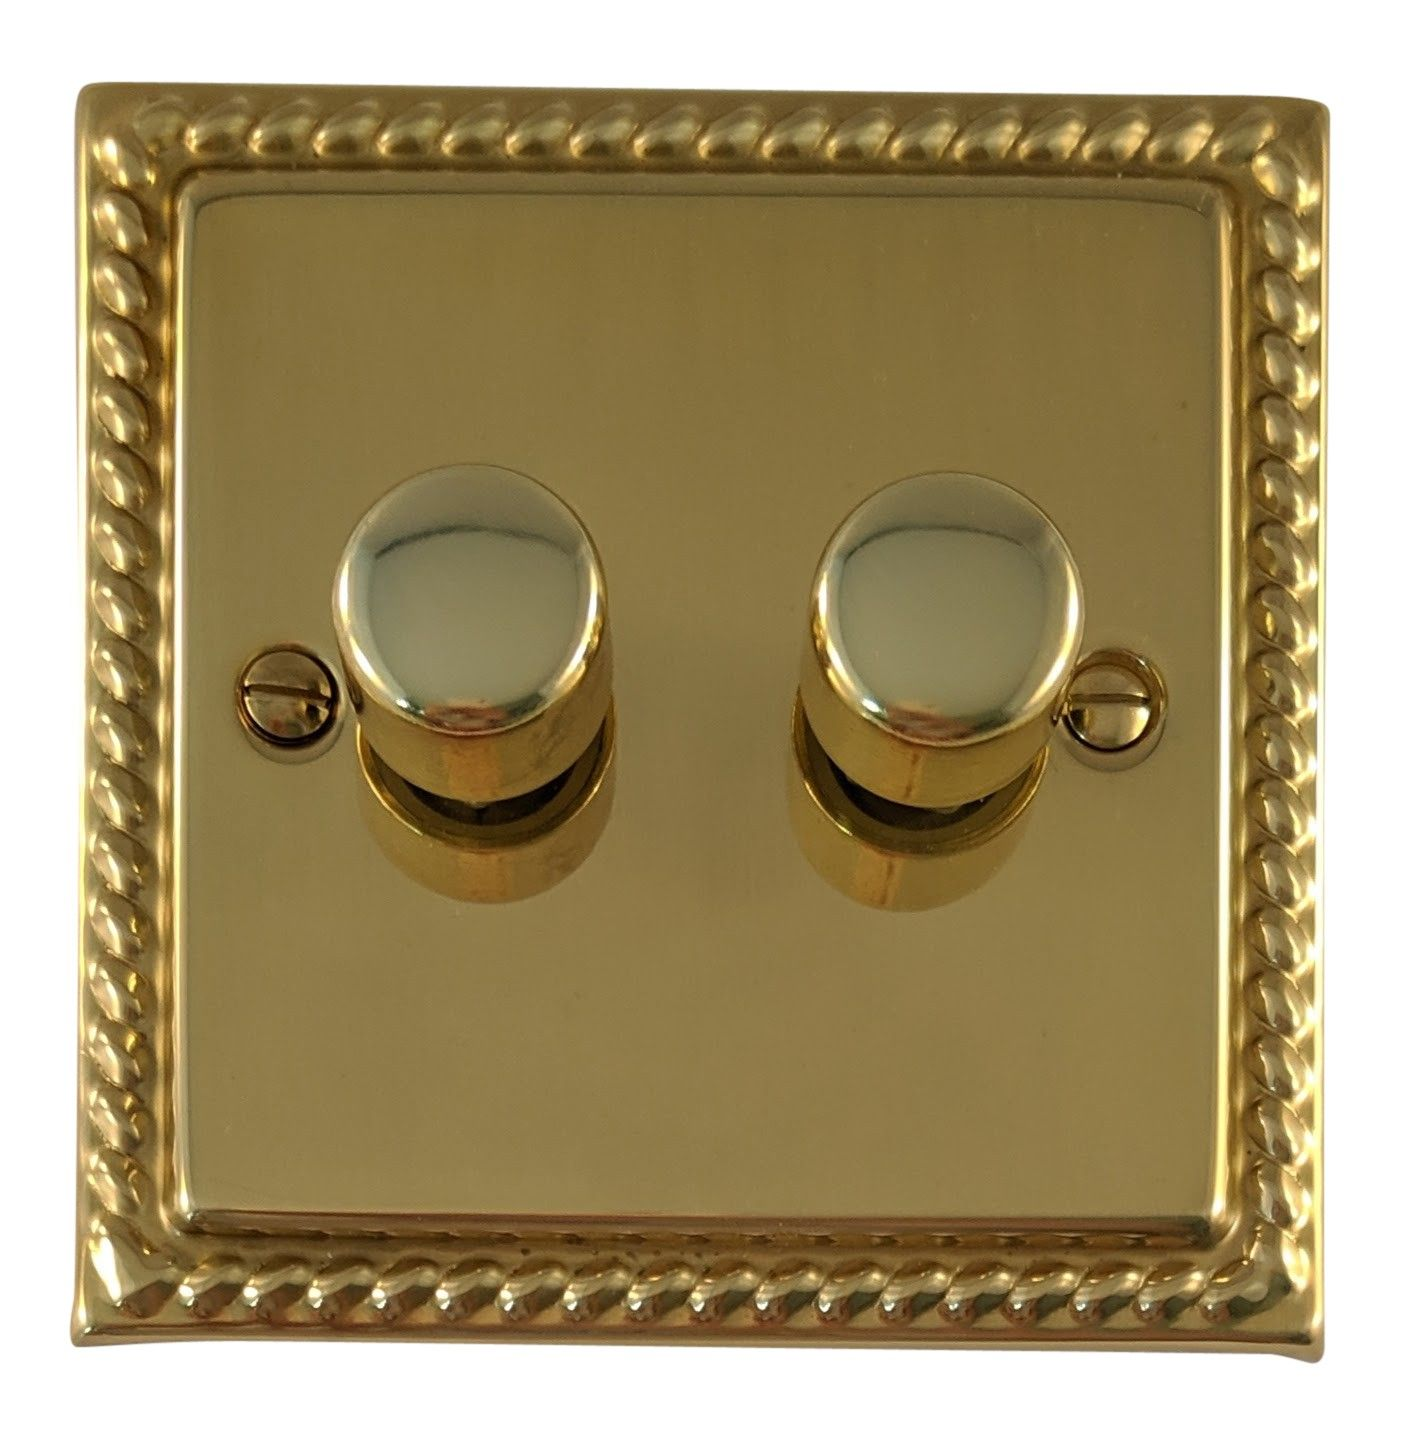 G&H MB12 Monarch Roped Polished Brass 2 Gang 1 or 2 Way 40-400W Dimmer Switch